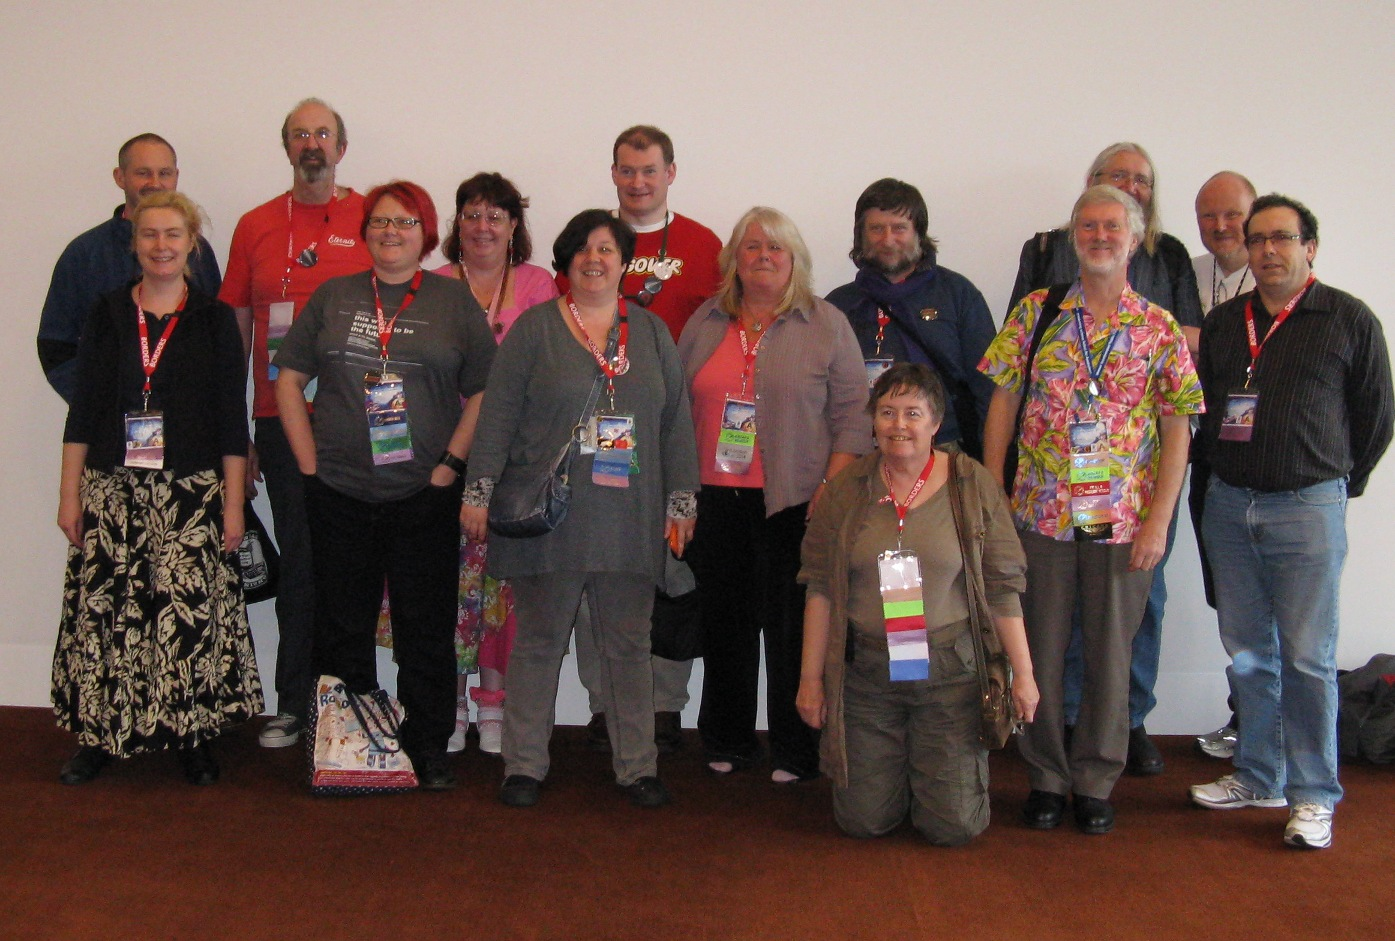 Former GUFF winners gathered at Aussiecon 4, 2010